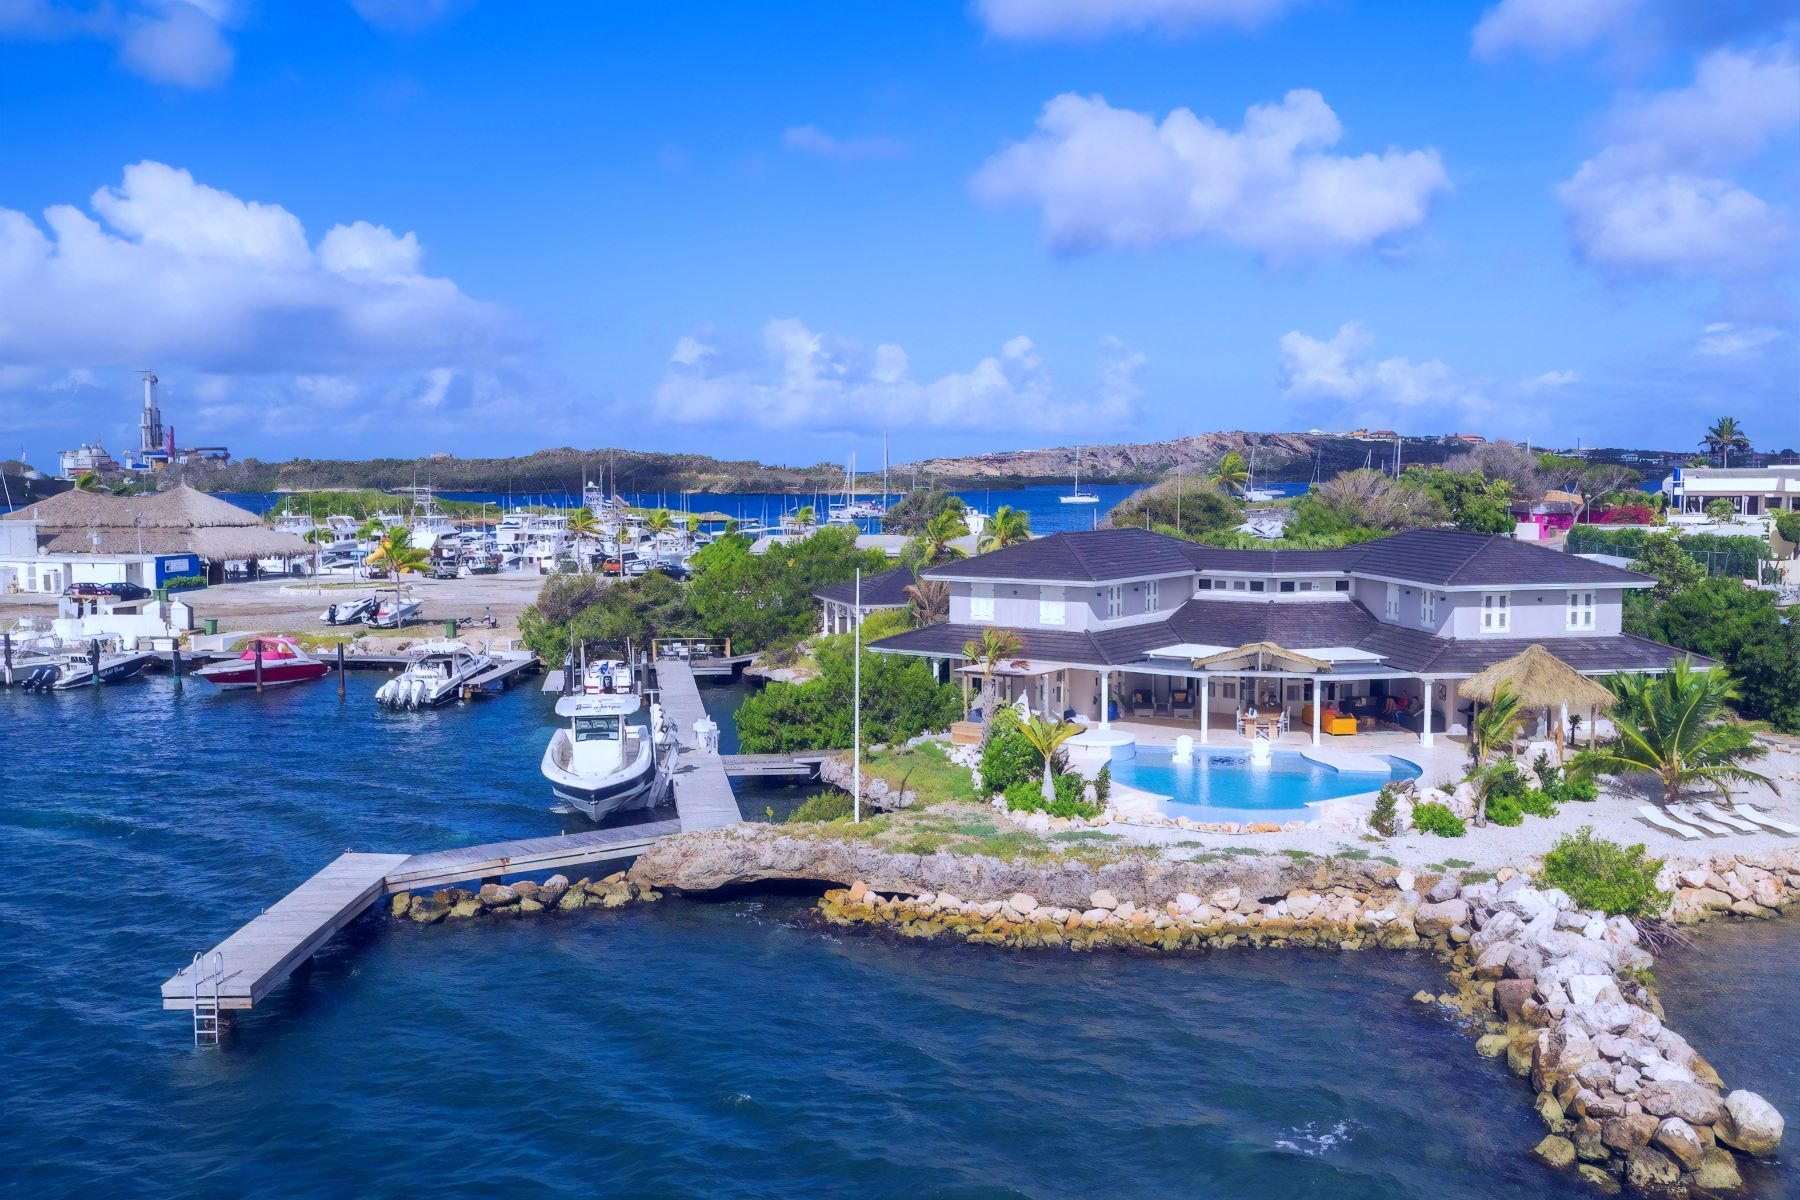 Single Family Homes for Sale at Brakkeput Waterfront Peninsula Villa 15 Willemstad, Curacao